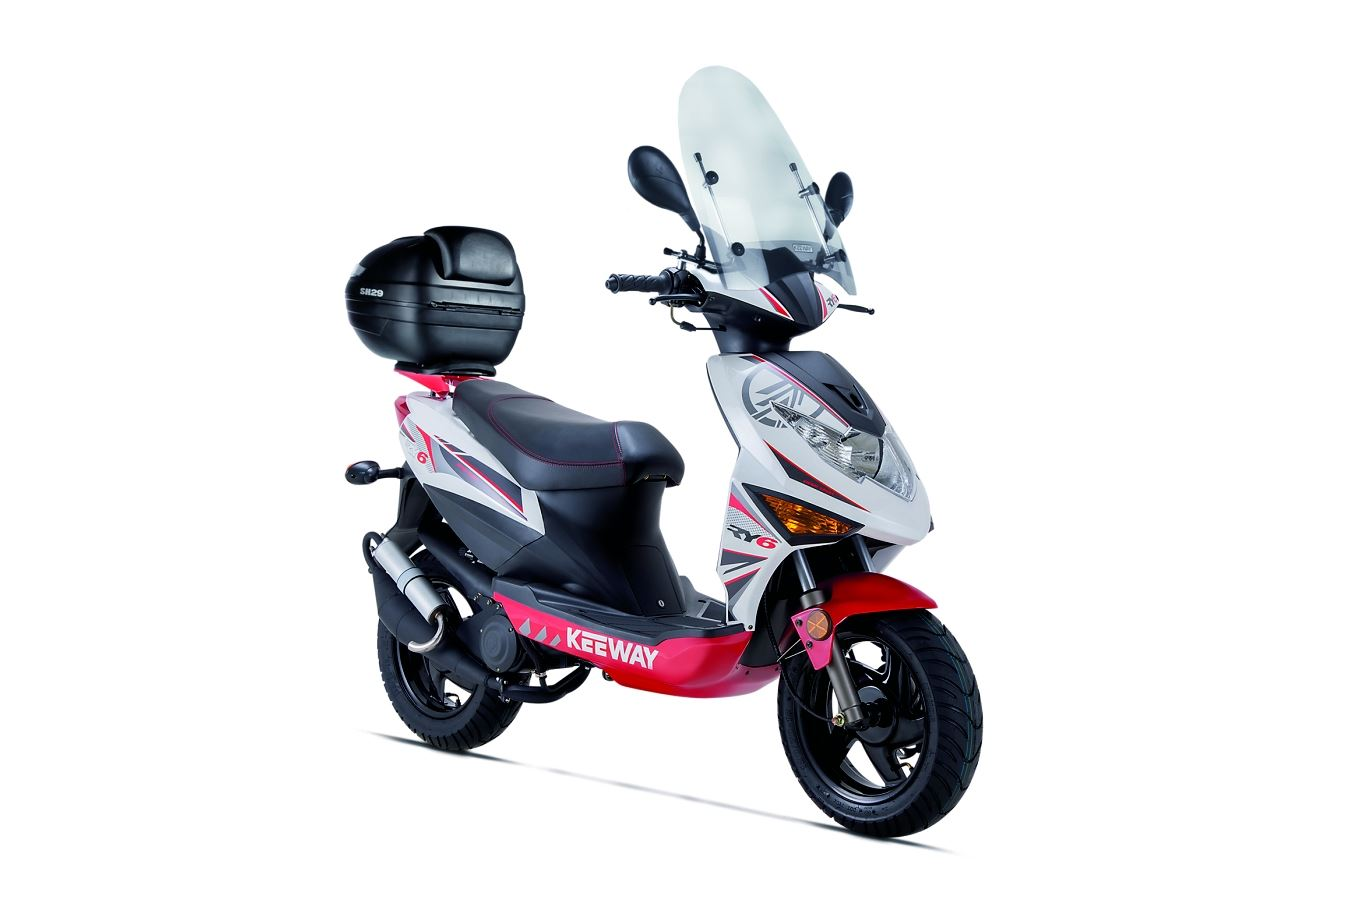 keeway ry6 50 scooter scooter 50 andar de moto. Black Bedroom Furniture Sets. Home Design Ideas